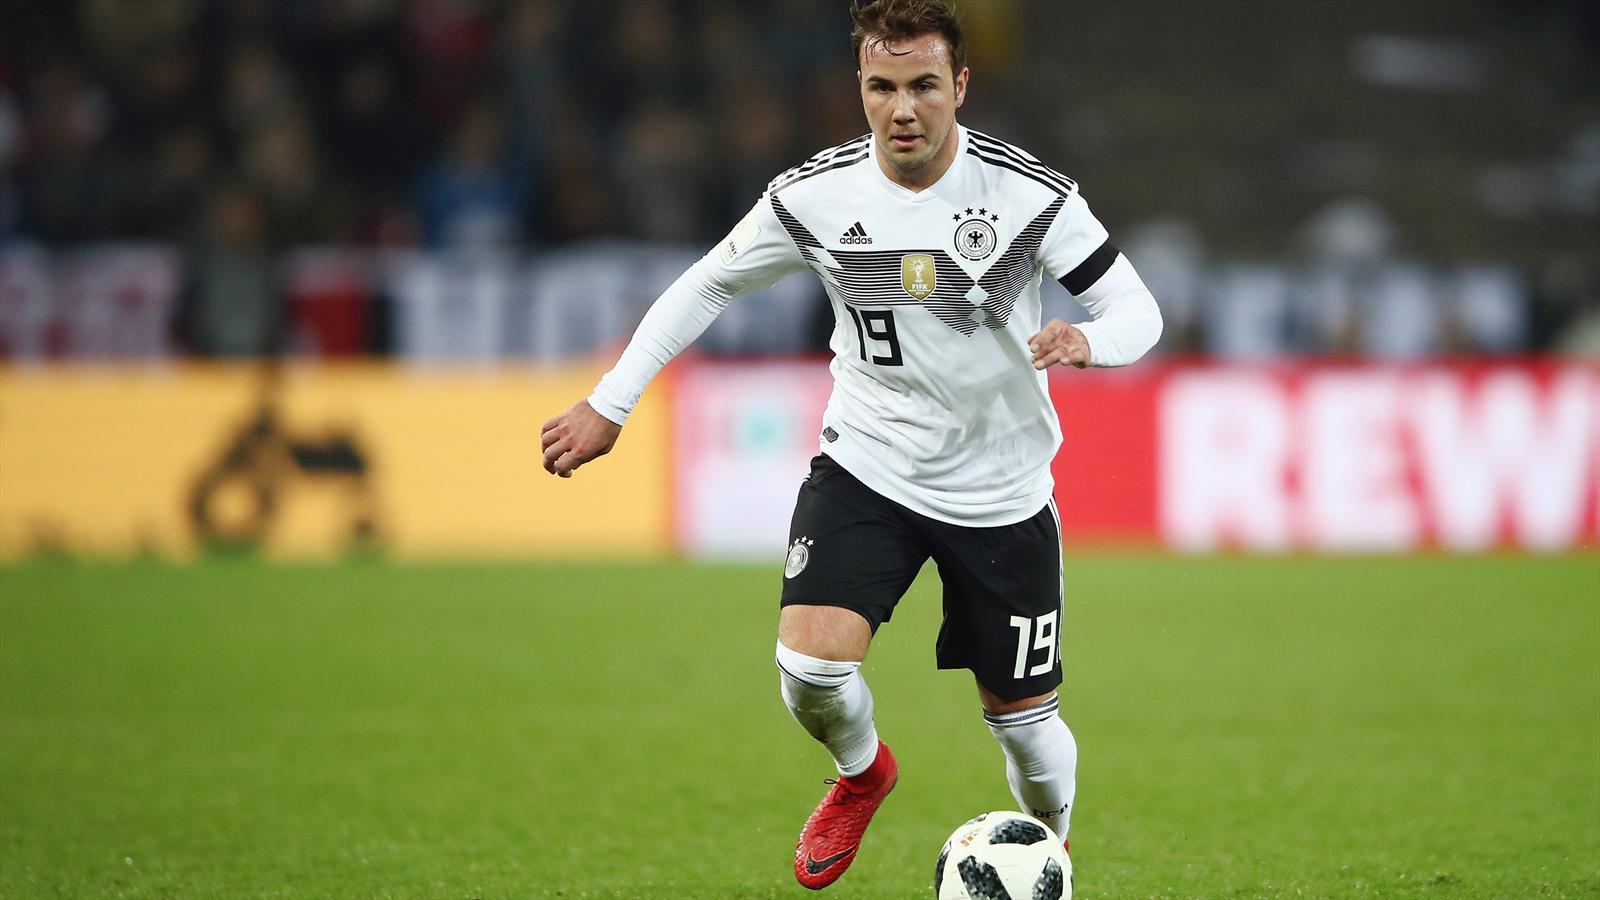 mario g tze will keinen bonus bei wm nominierung von bundestrainer joachim l w wm 2018. Black Bedroom Furniture Sets. Home Design Ideas